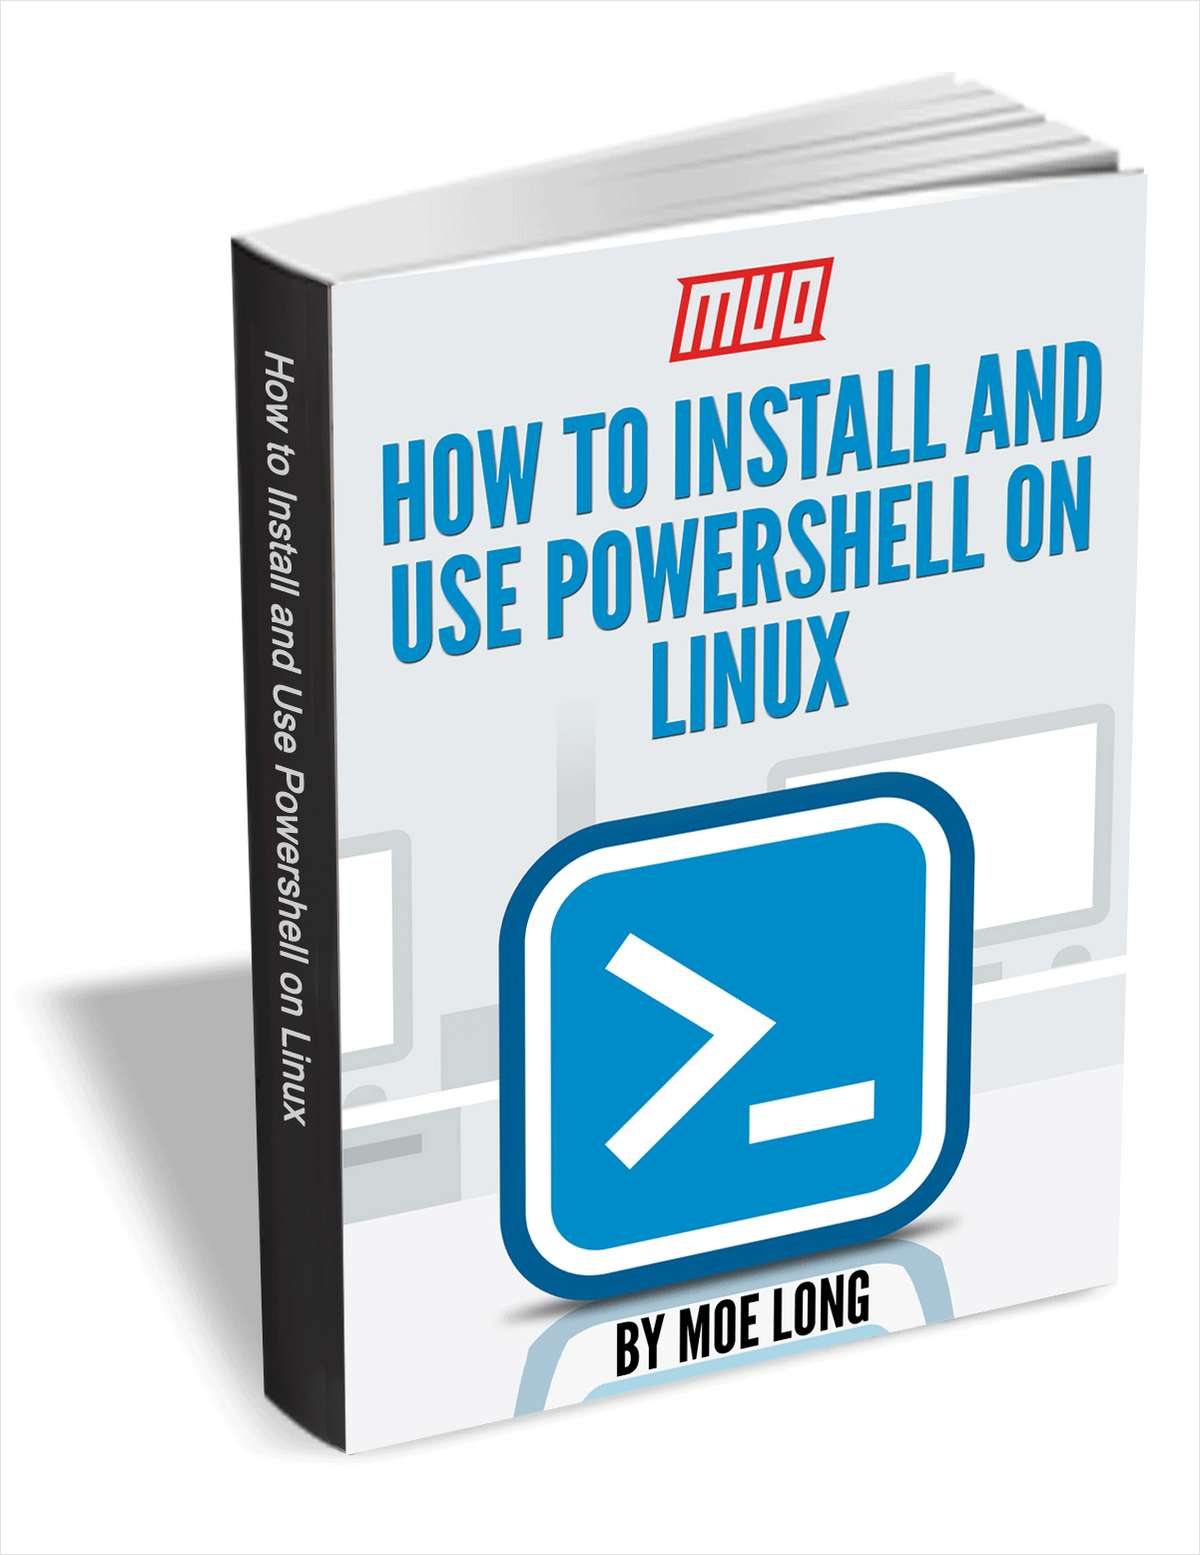 How To Install and Use PowerShell on Linux